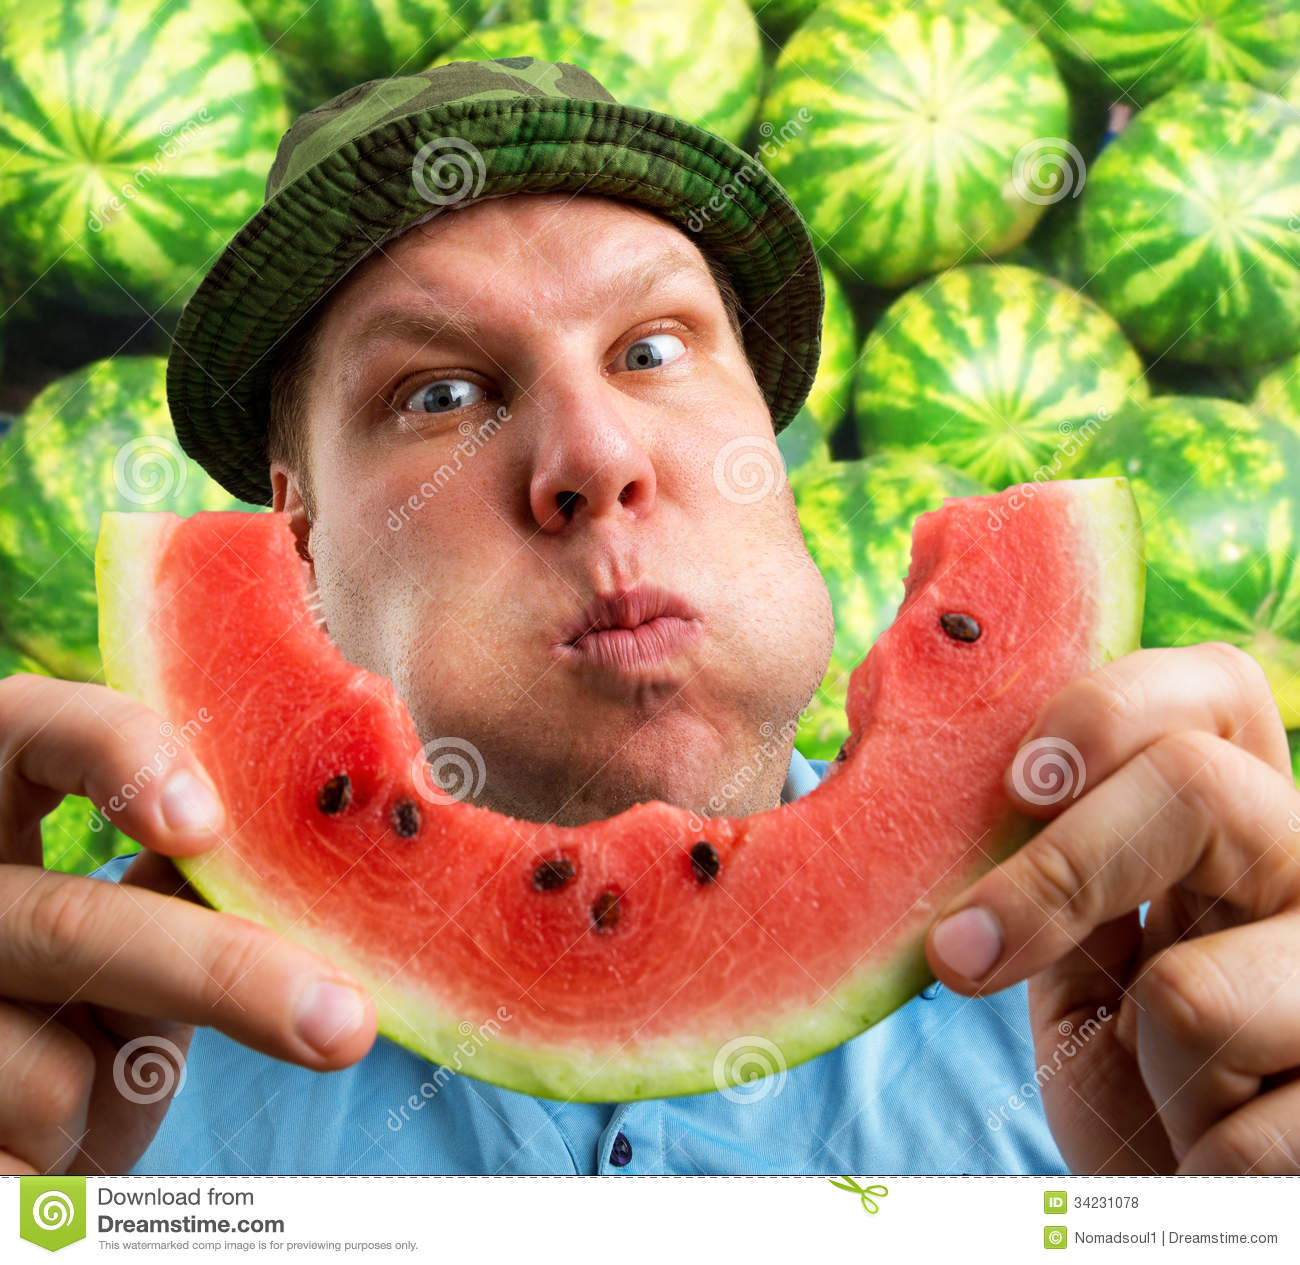 Top 9 Health Benefits of Eating Watermelon